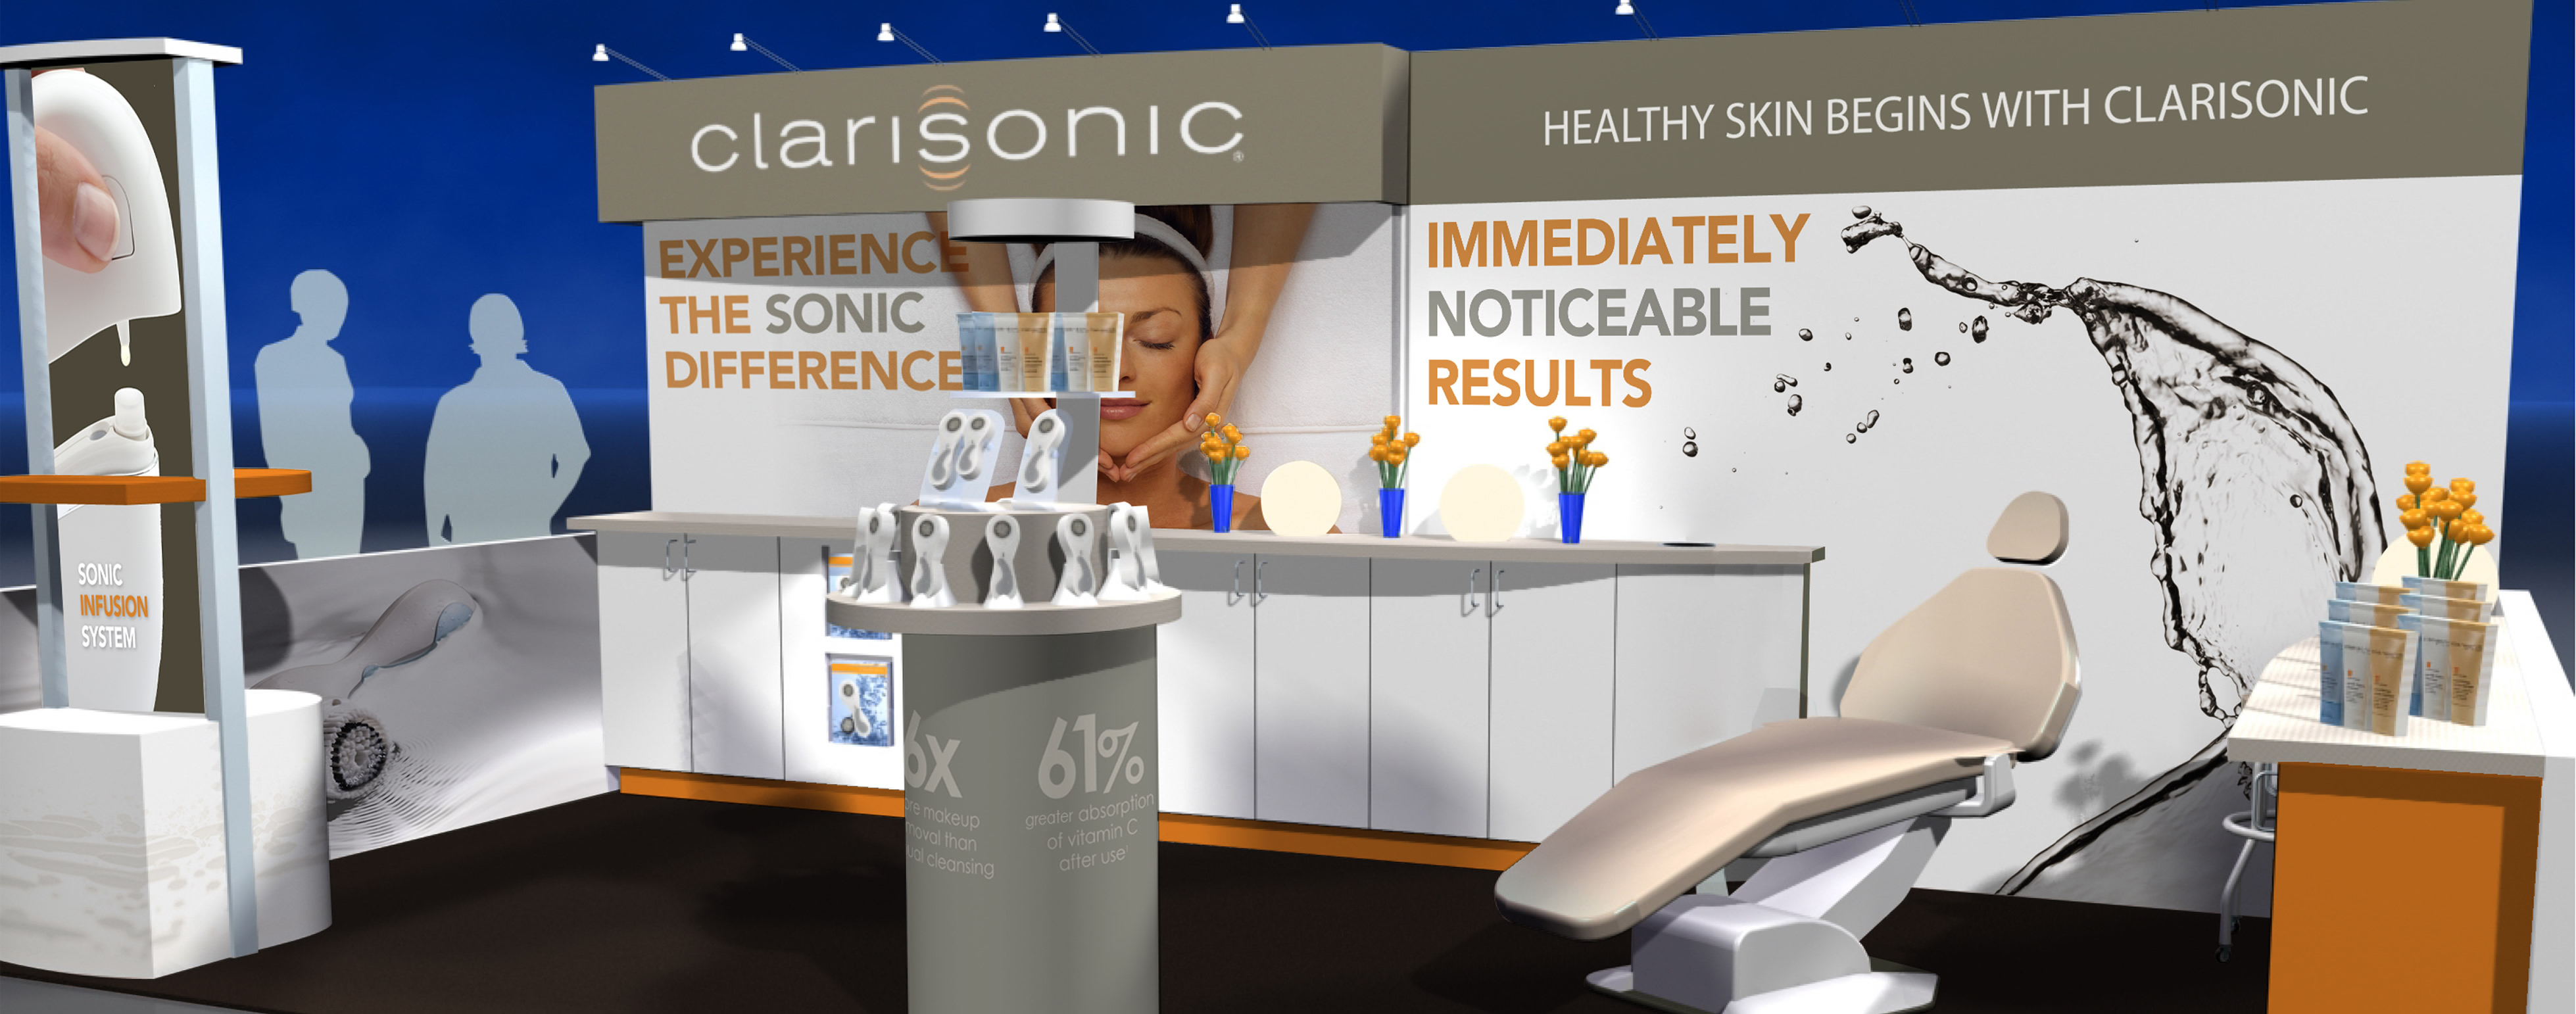 O'Berry Collaborative developed a Clarisonic tradeshow booth concept, and designed all the elements within the booth.